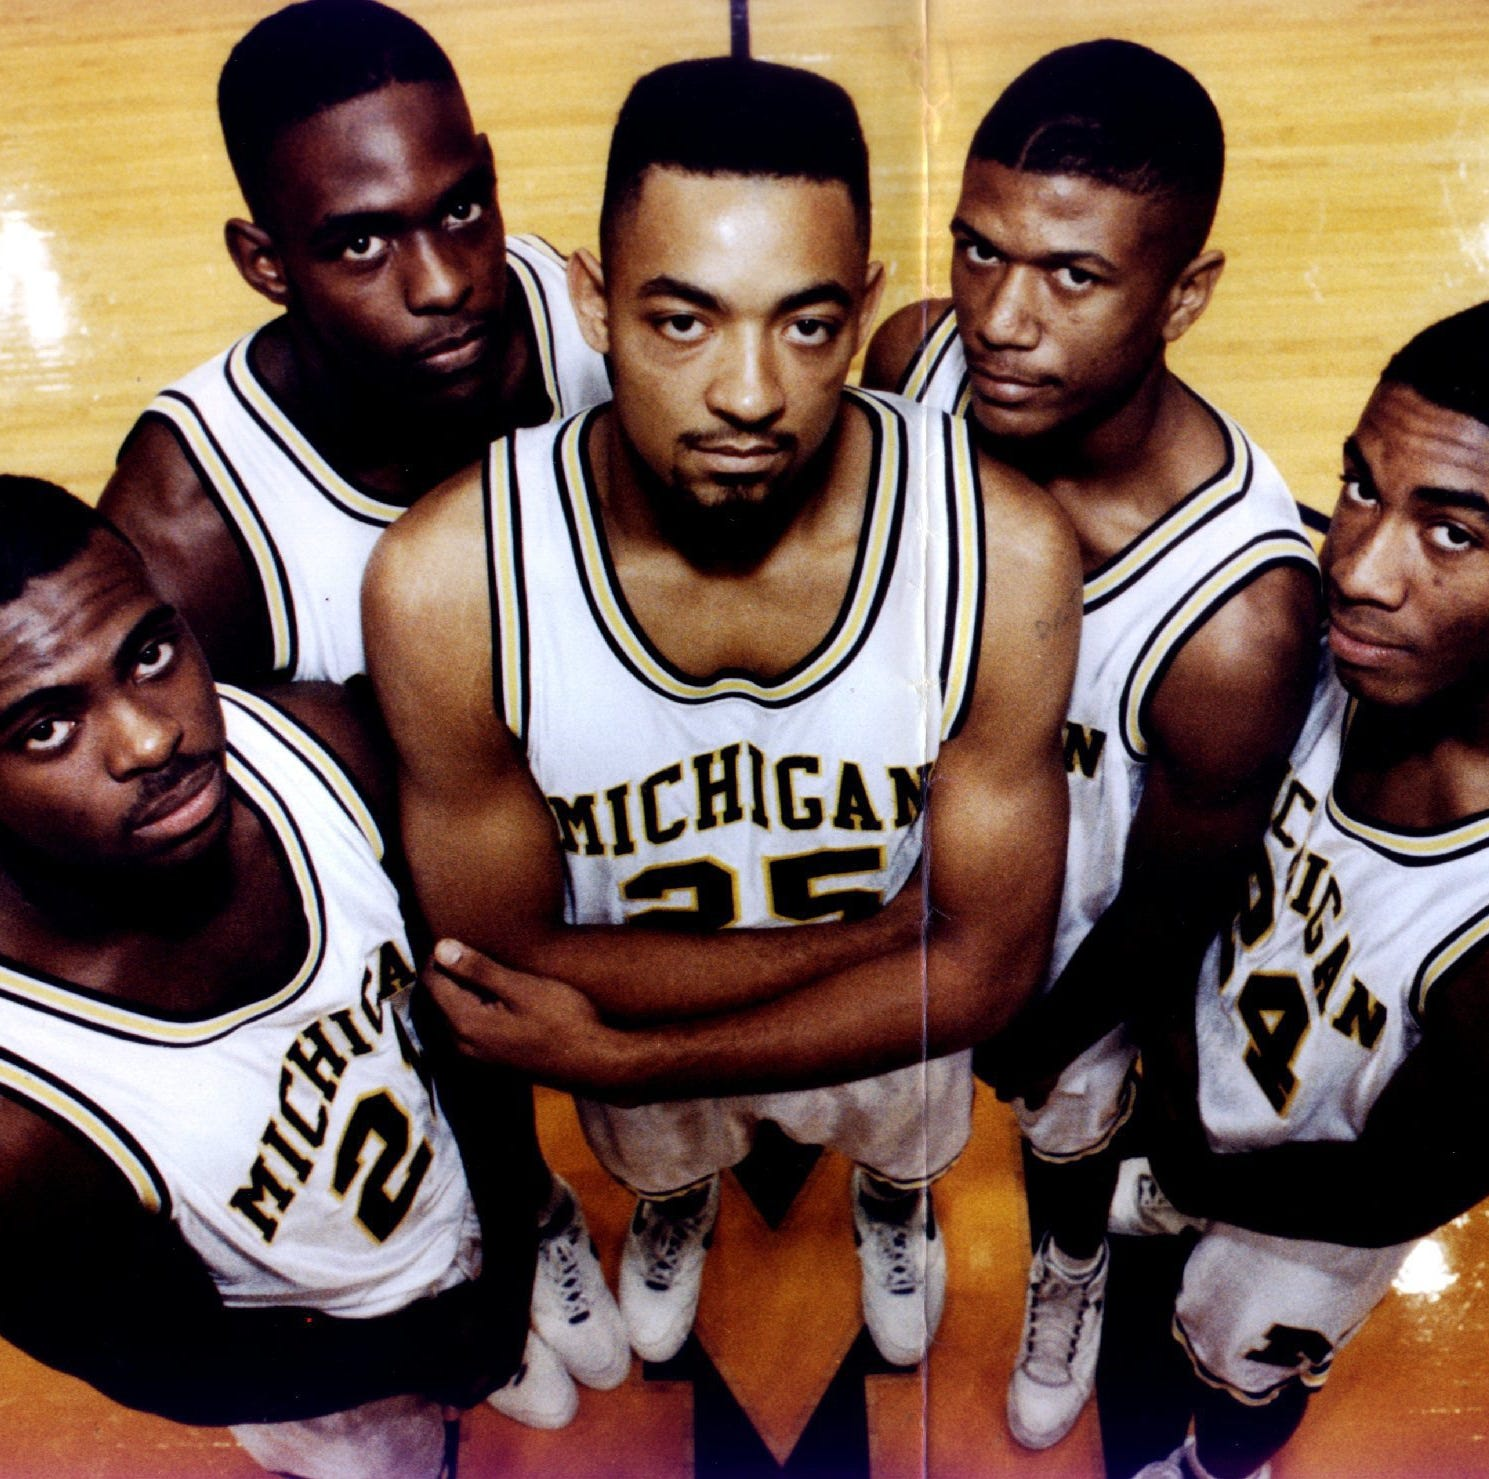 Juwan Howard not a slam dunk for Michigan, plenty of questions and risks